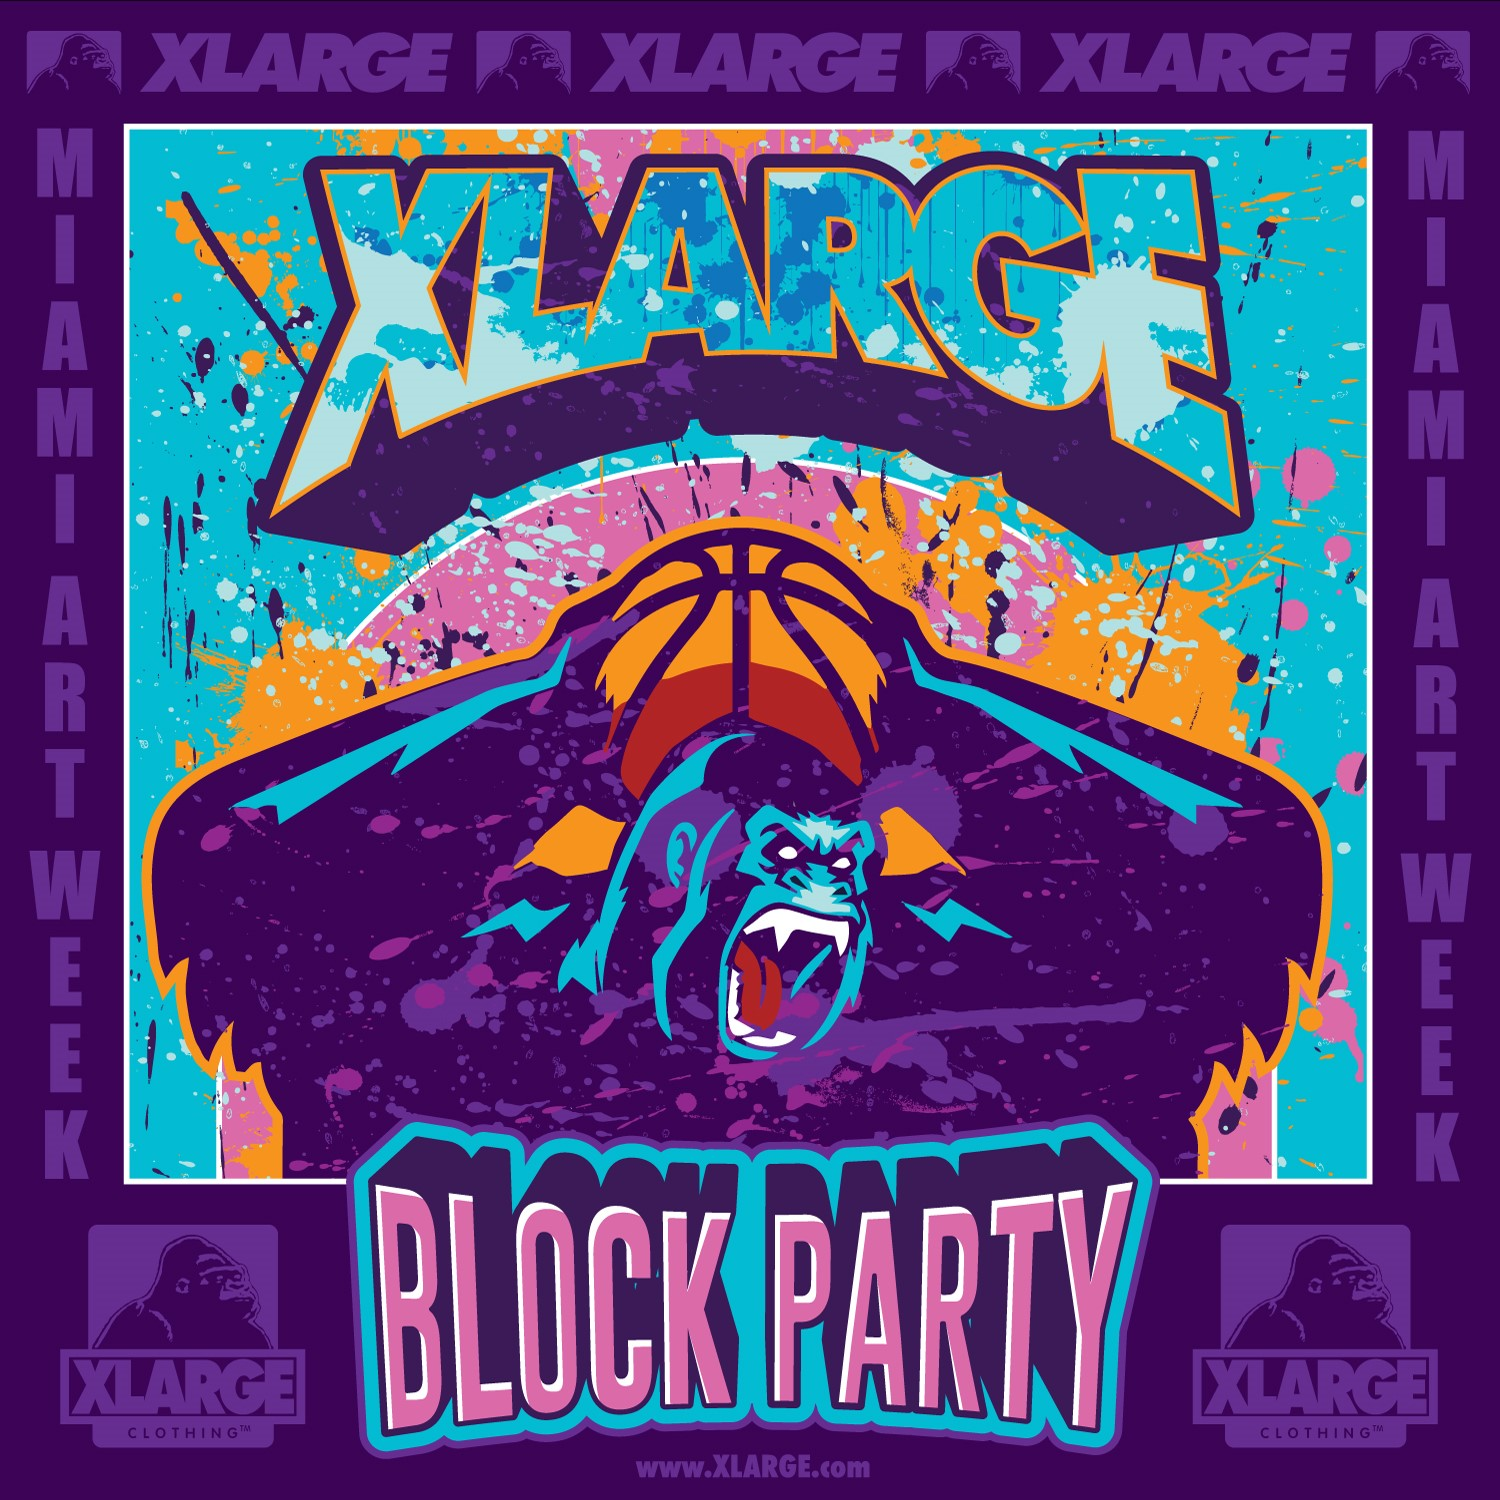 12.7 sat XLARGE MIAMI ART WEEK